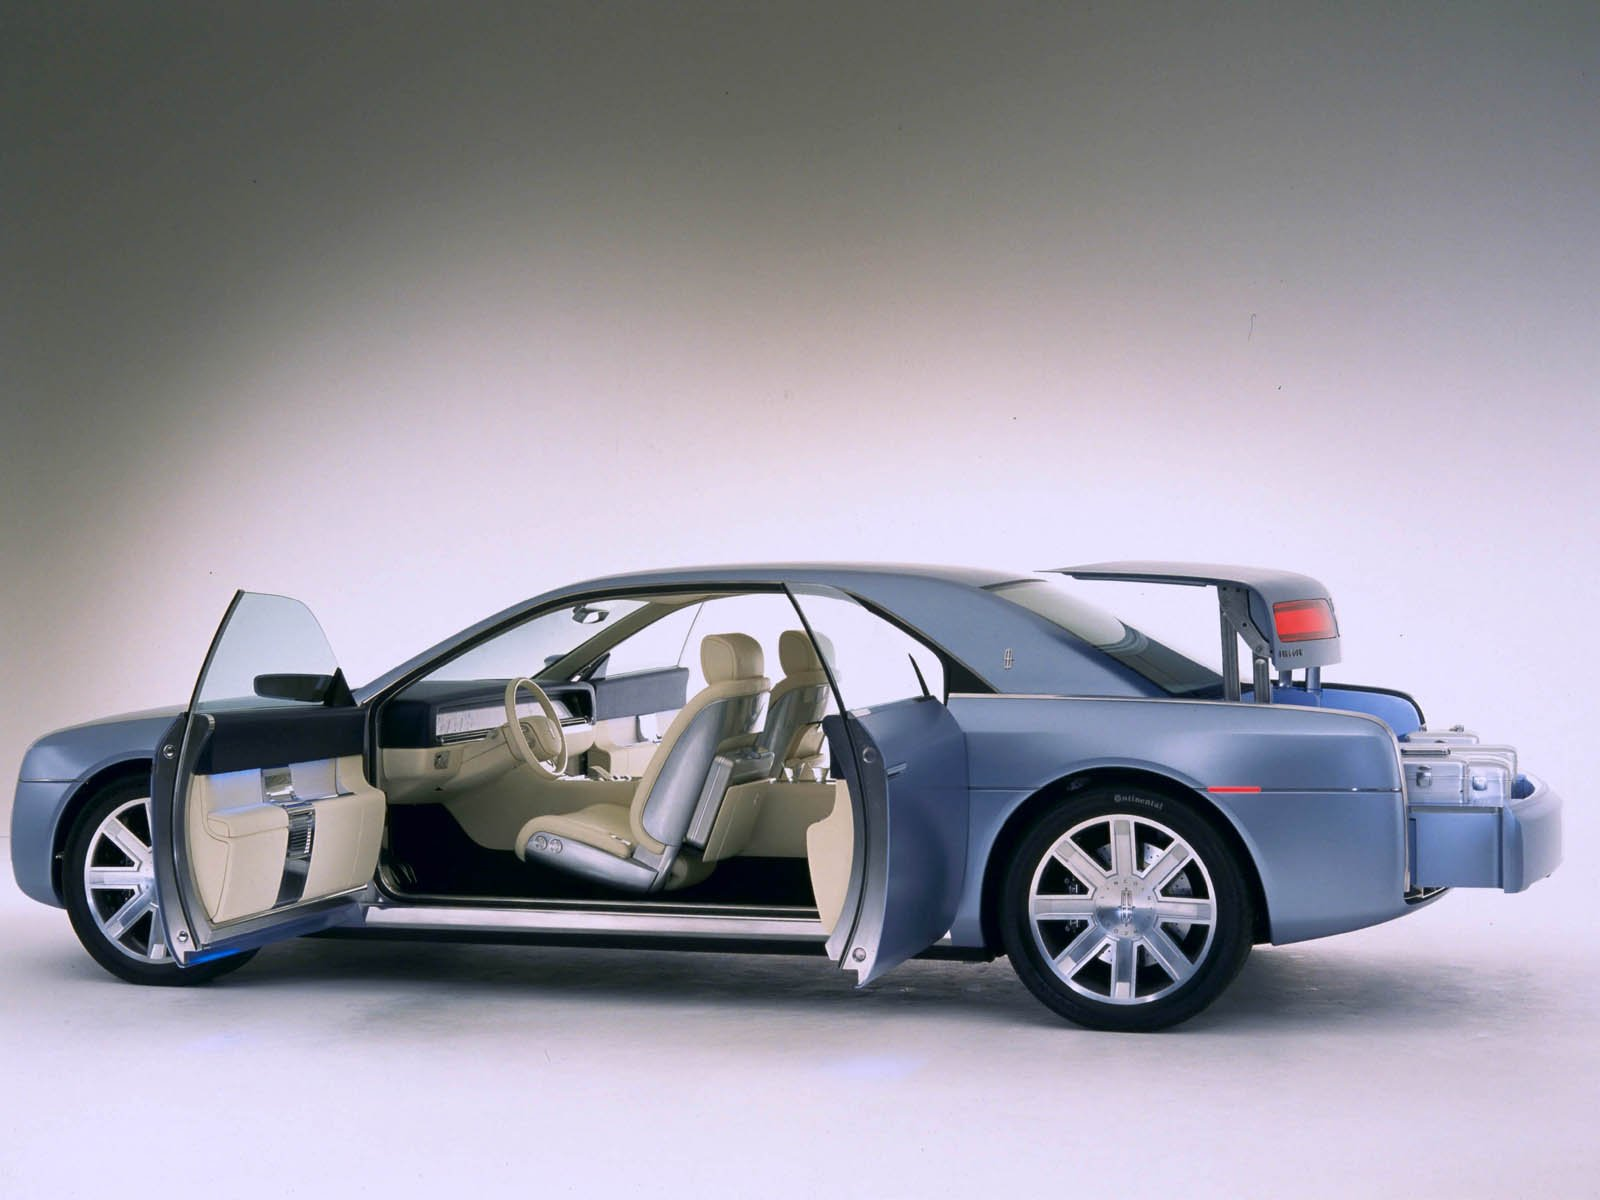 2012 Lincoln Continental Concept Cars Review